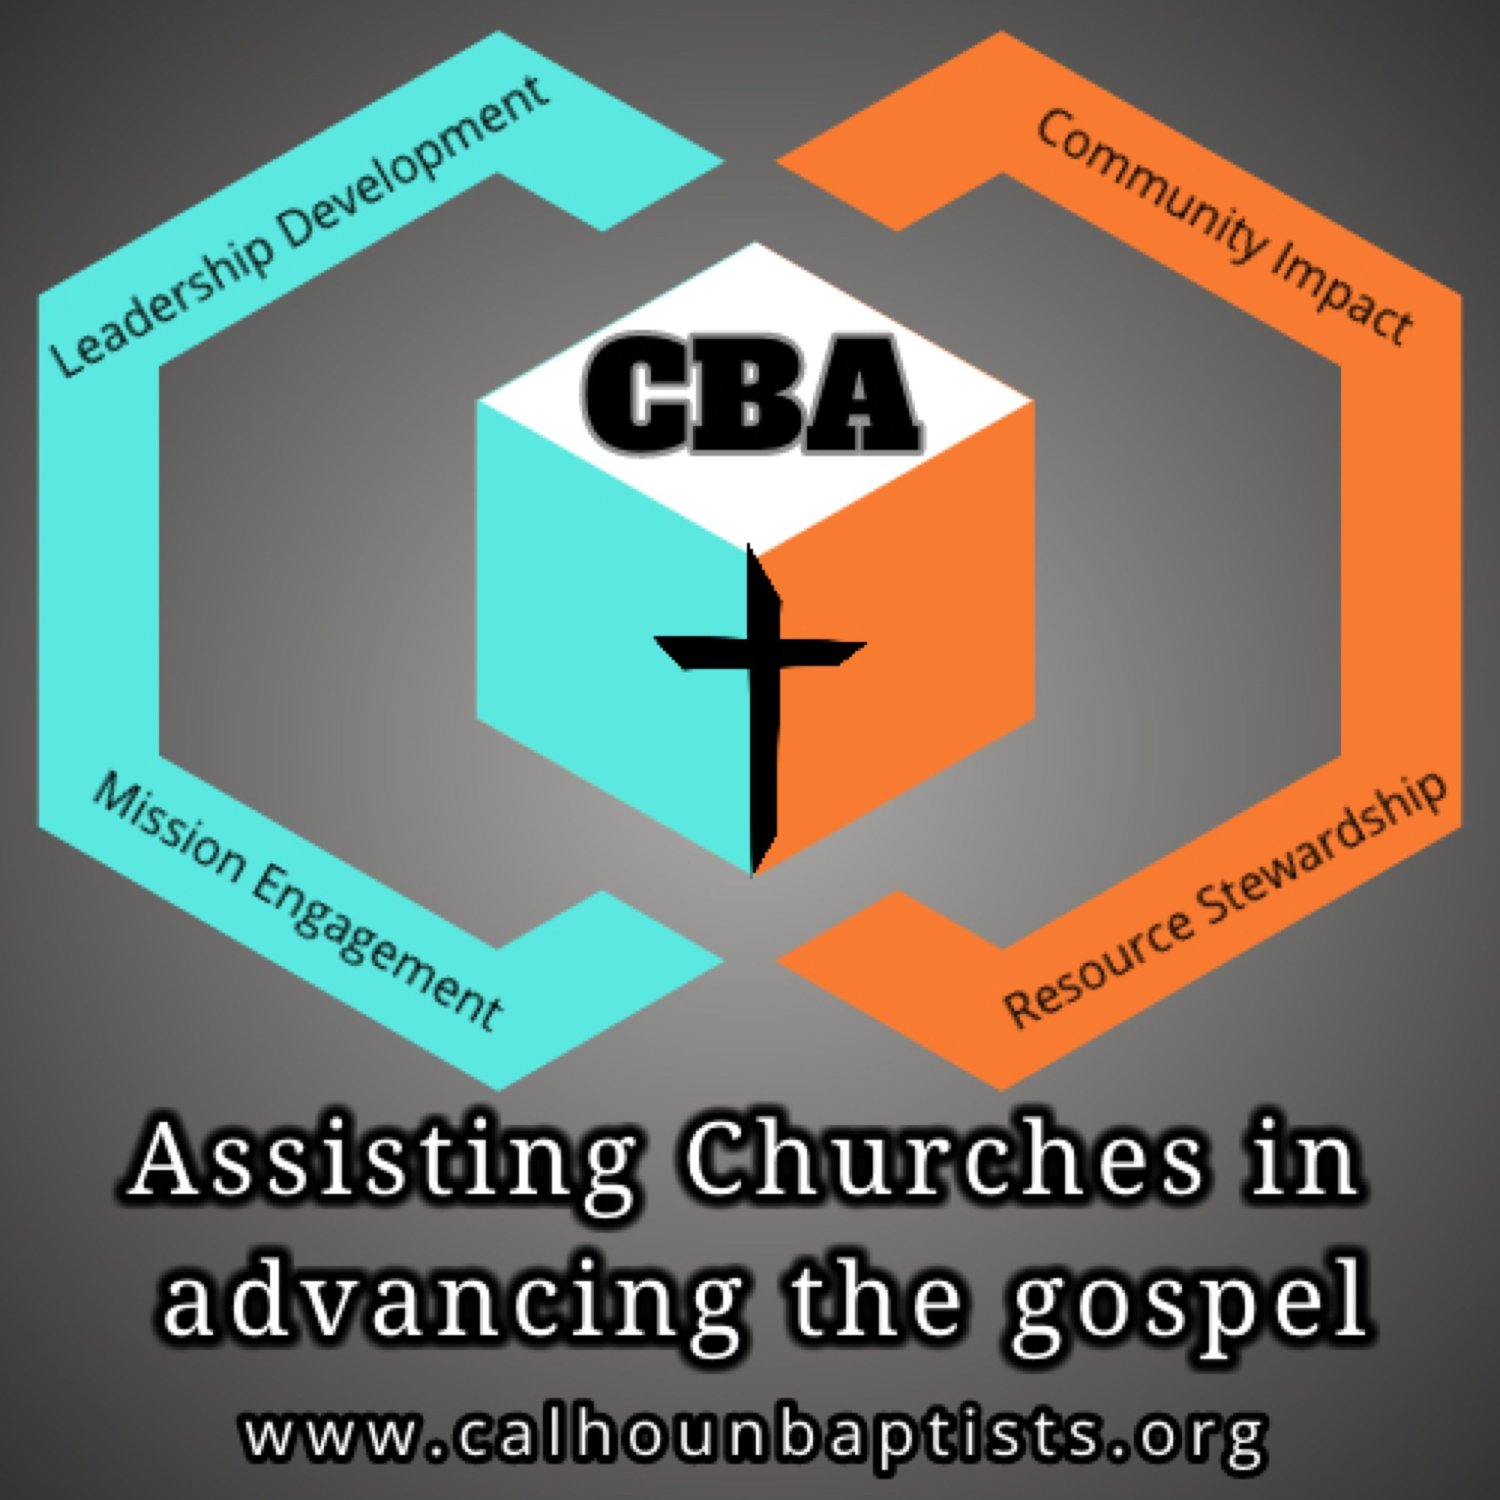 Calhoun Baptist Association